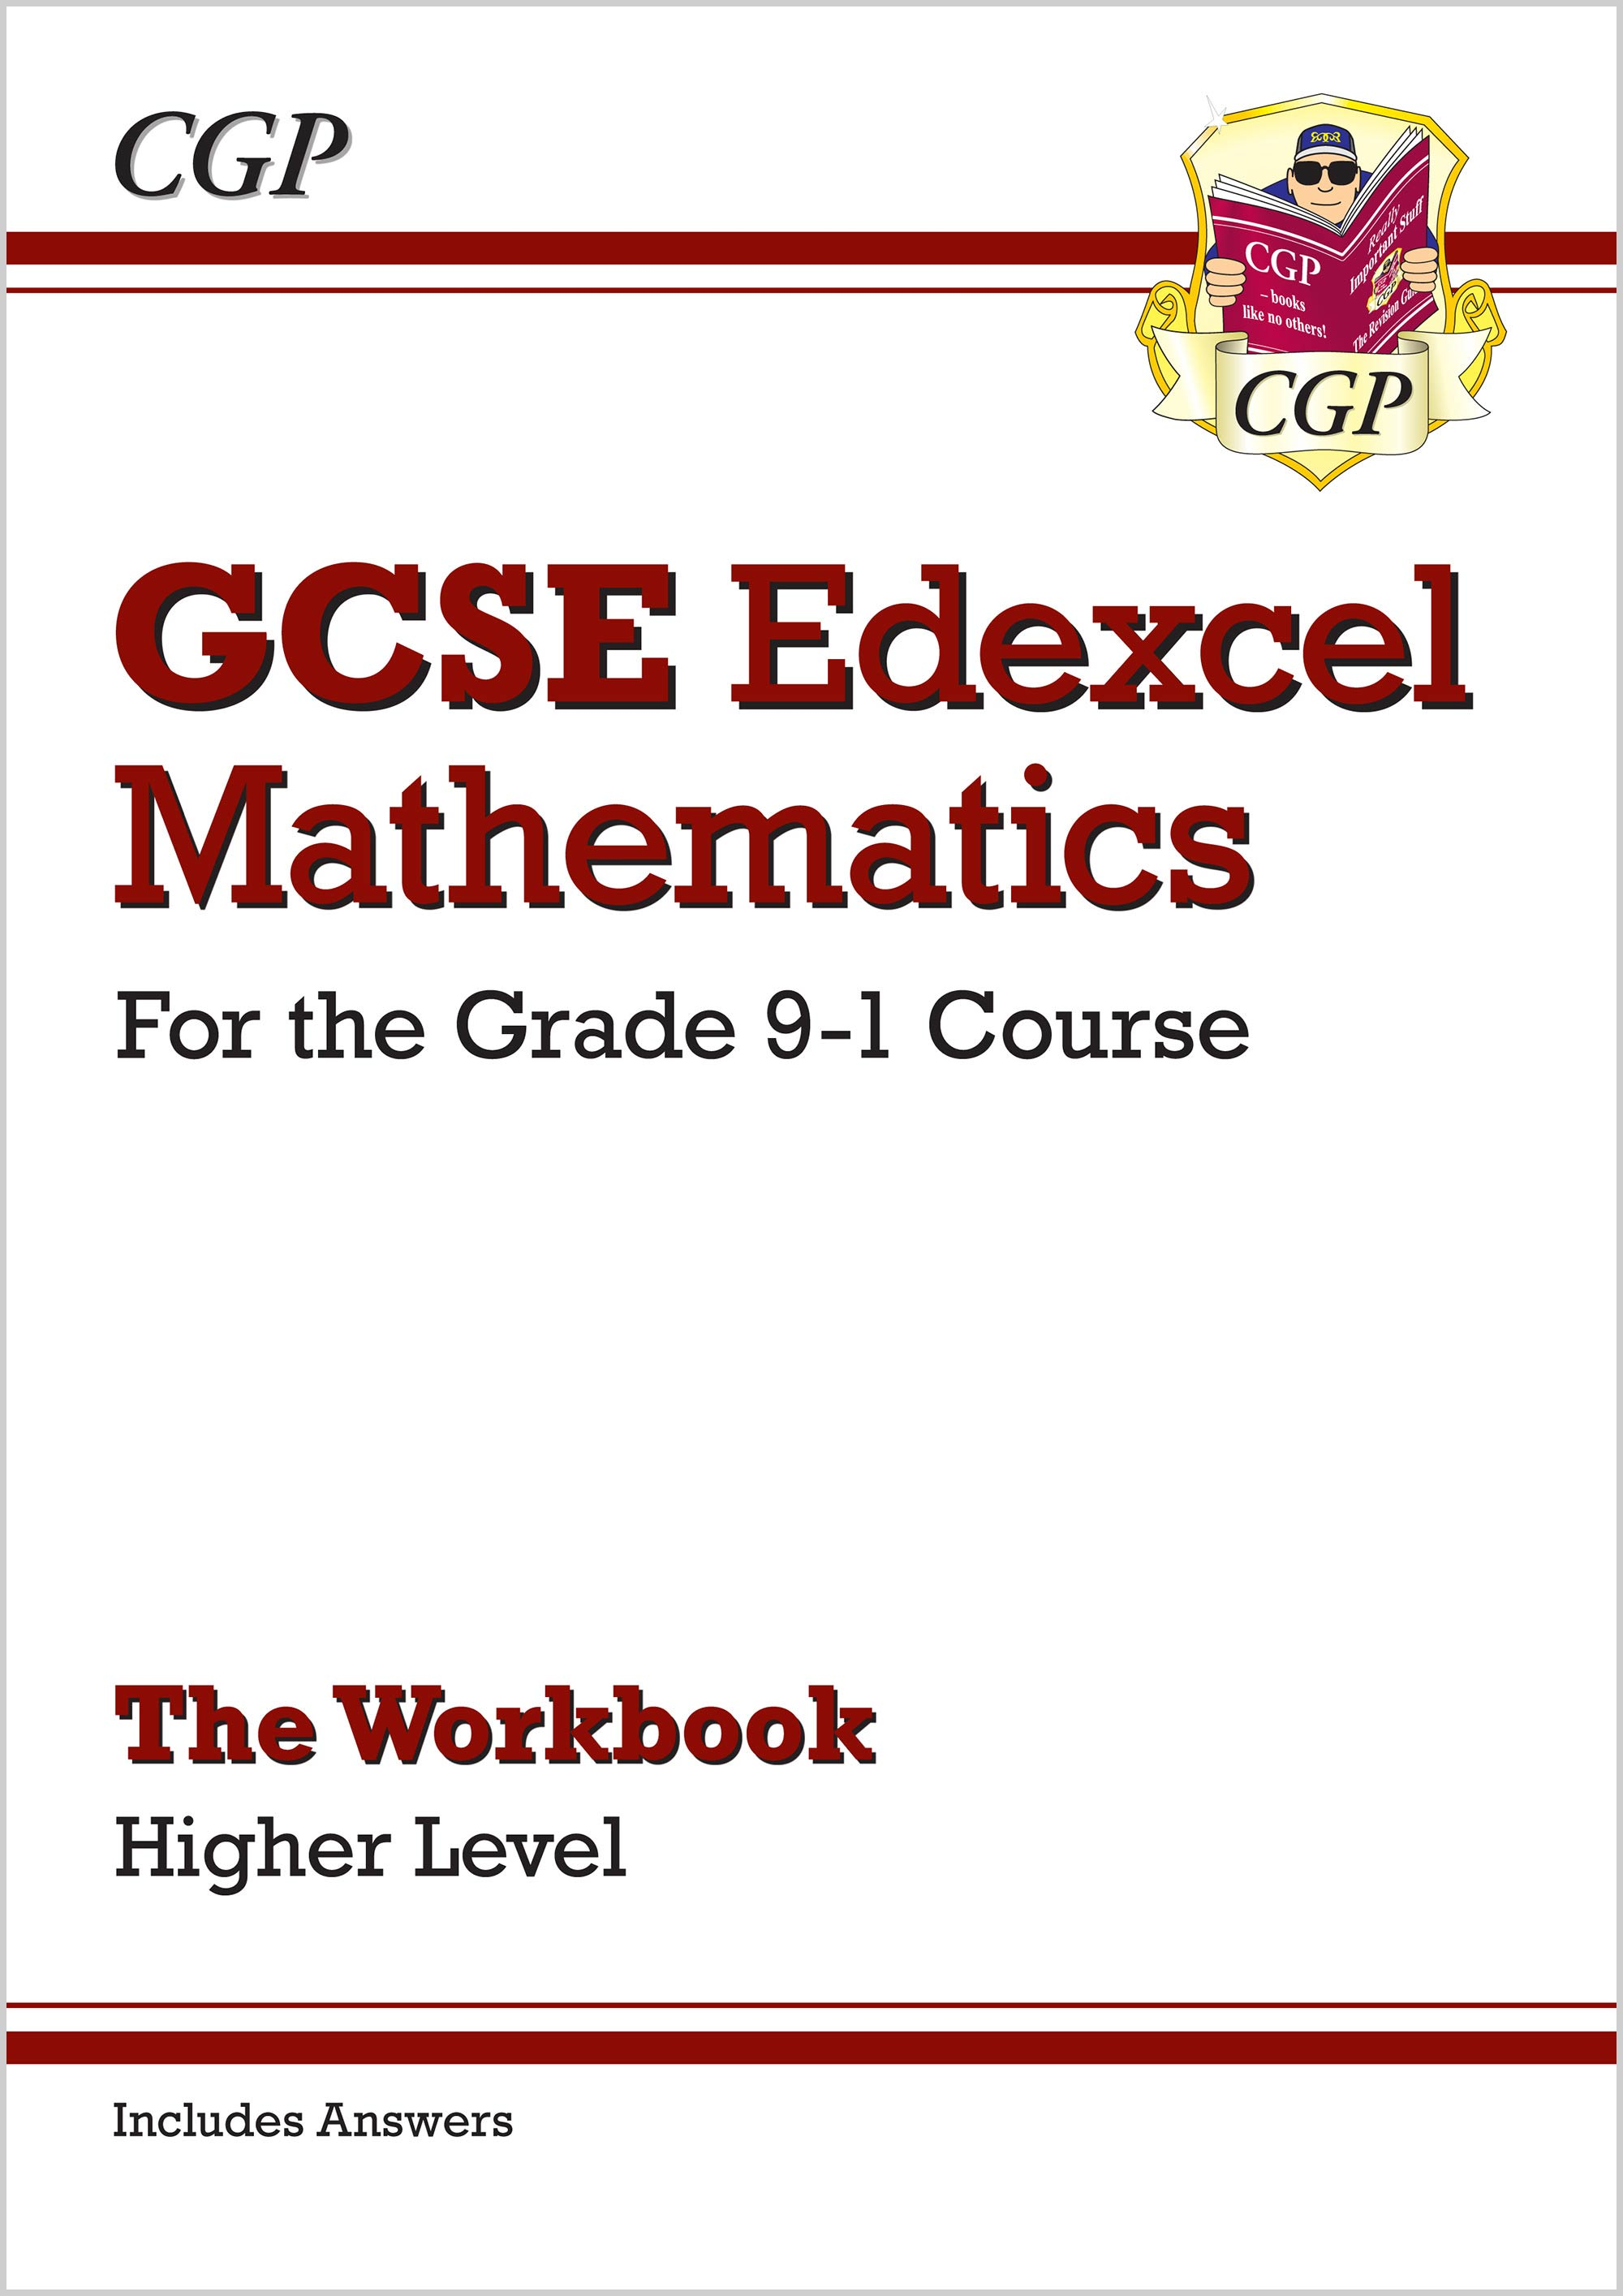 MXHW46B - GCSE Maths Edexcel Workbook: Higher - for the Grade 9-1 Course (includes Answers)